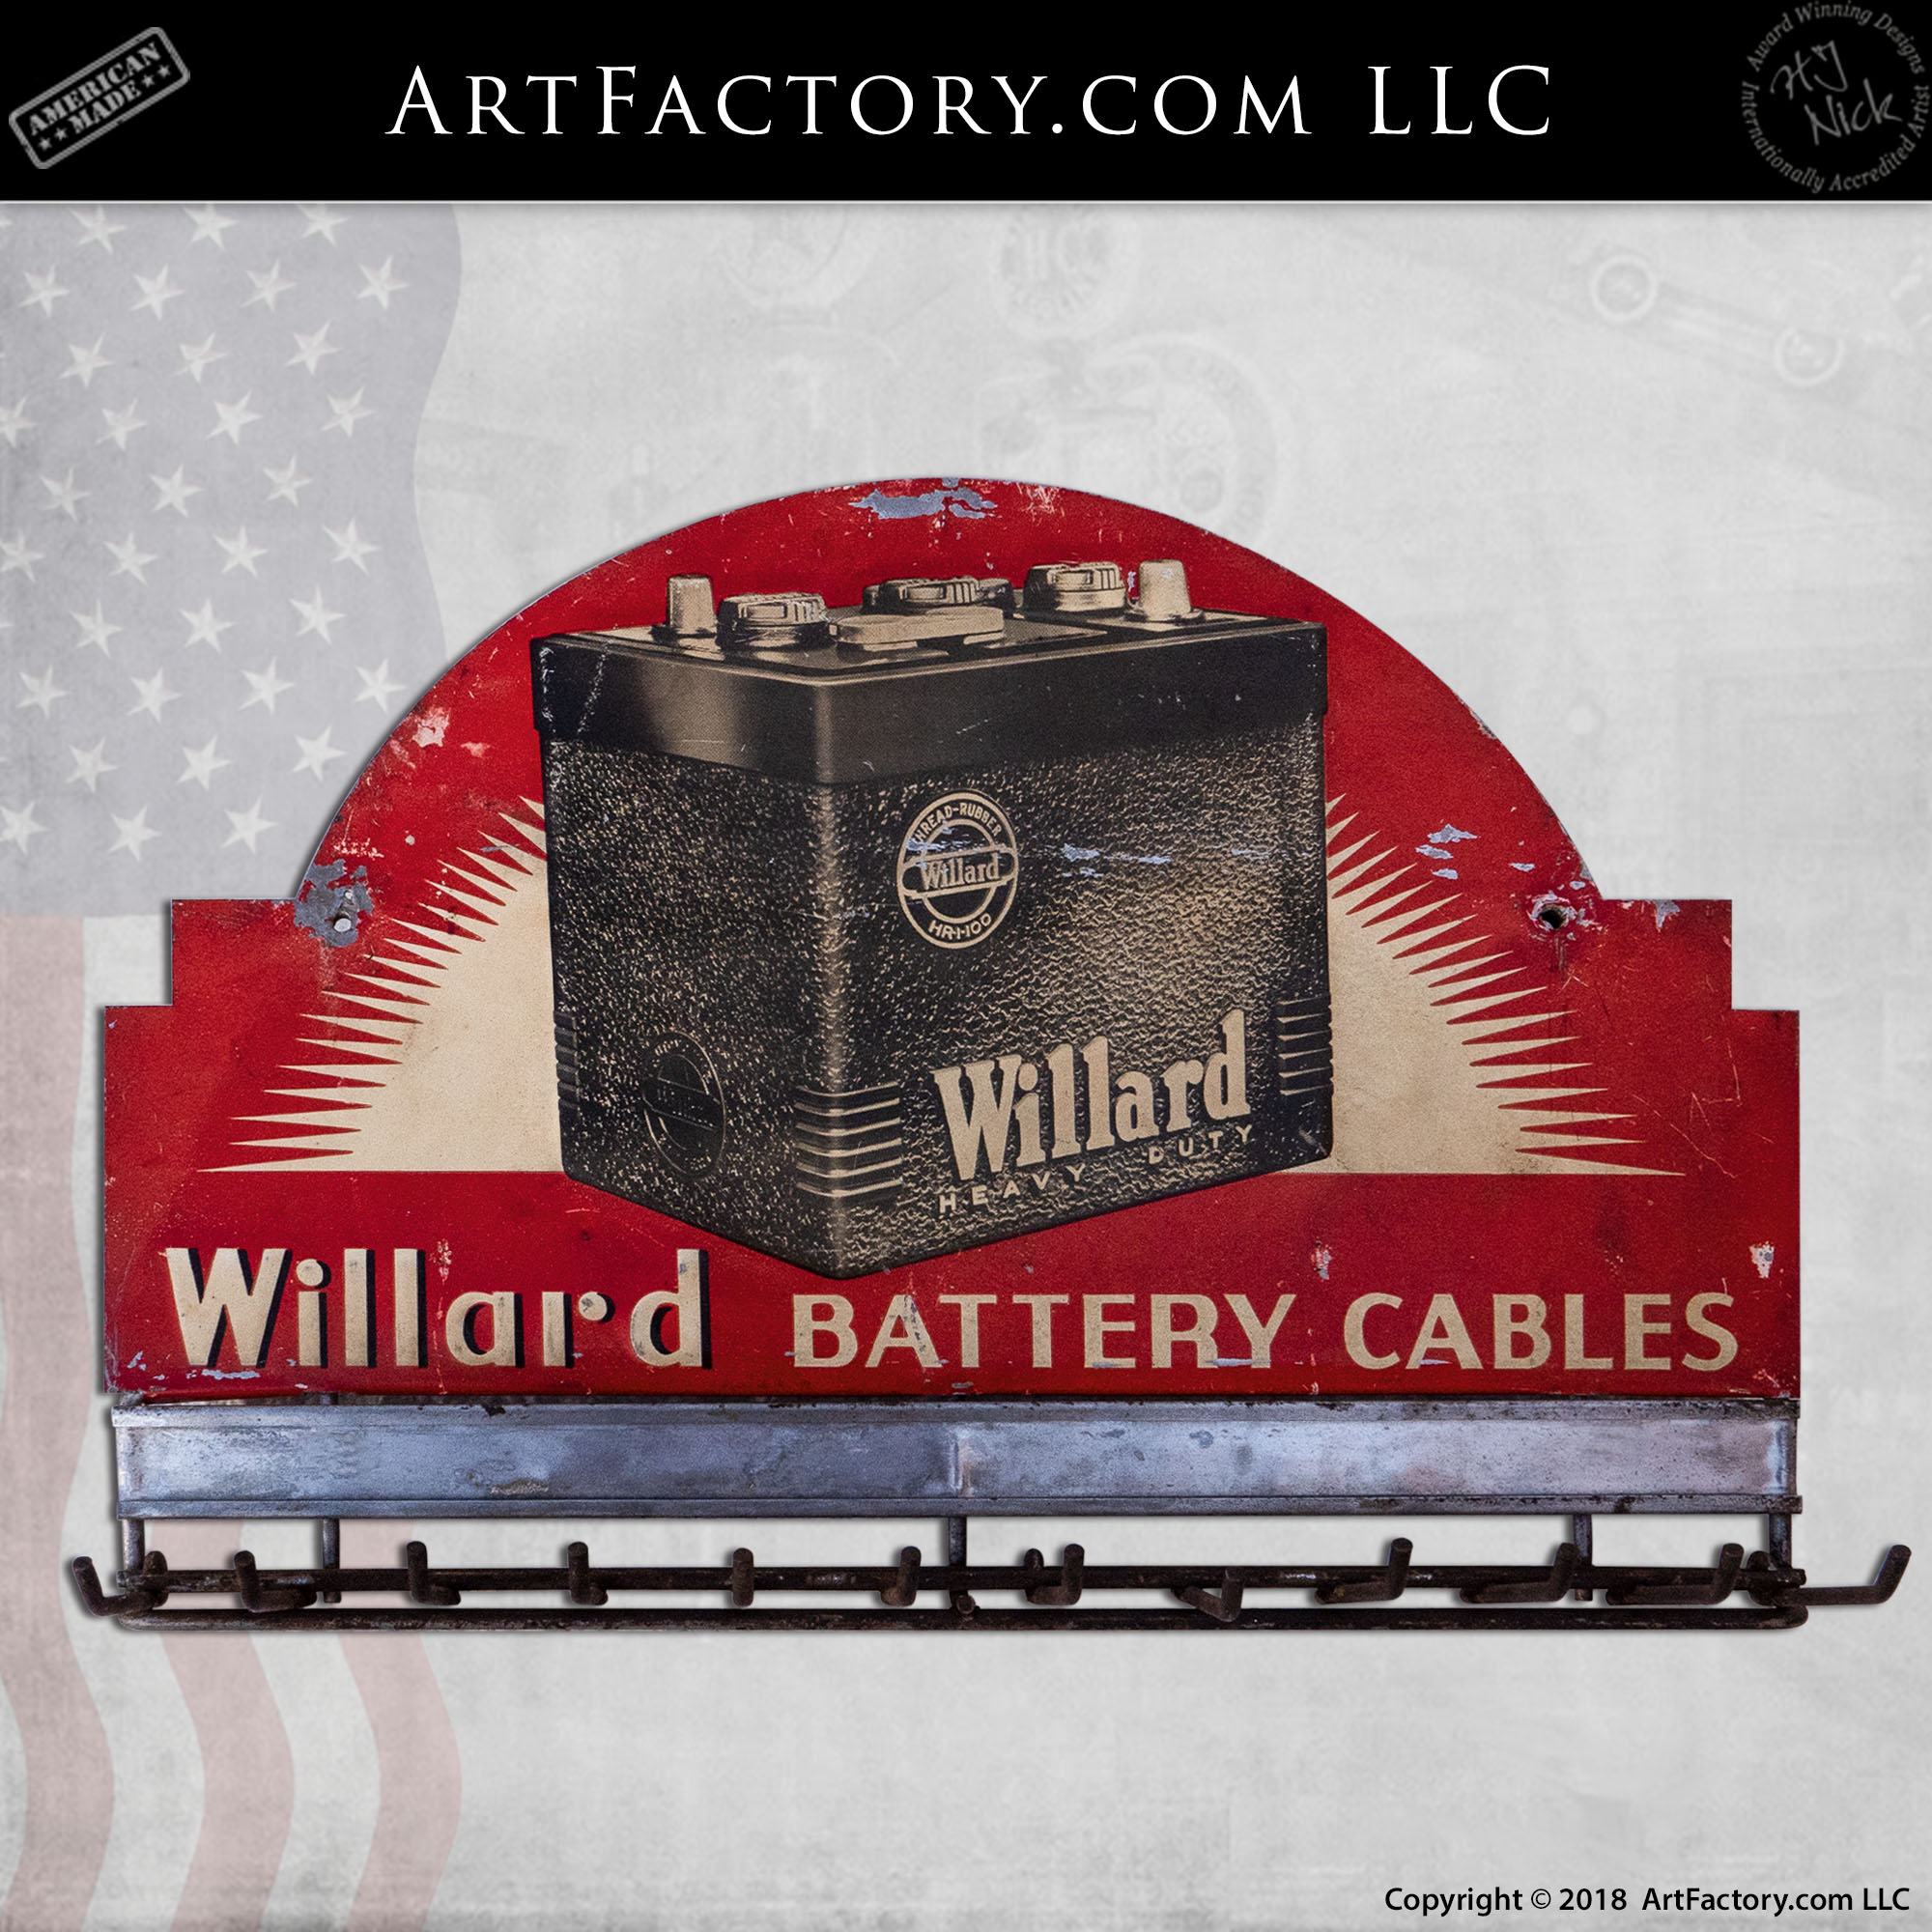 Willard Battery Cables Display Rack